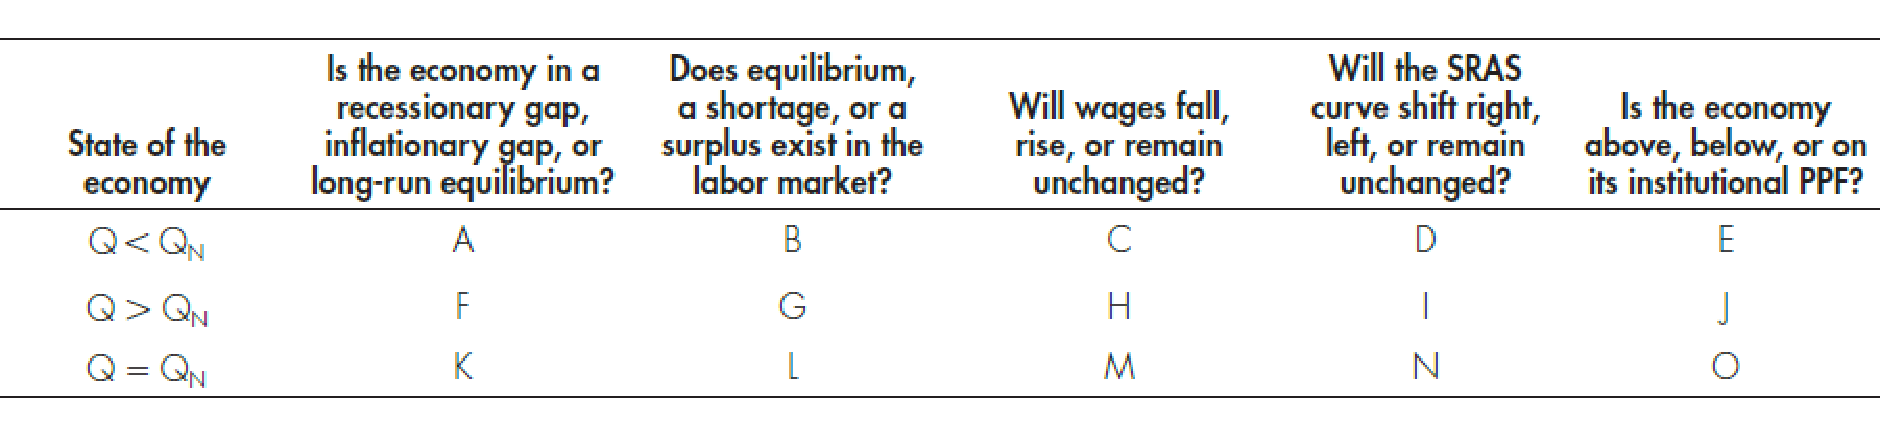 Chapter 9, Problem 7WNG, Fill in the blank spaces (AO) in the table that follows. In the table, Q = Real GDP and QN = Natural